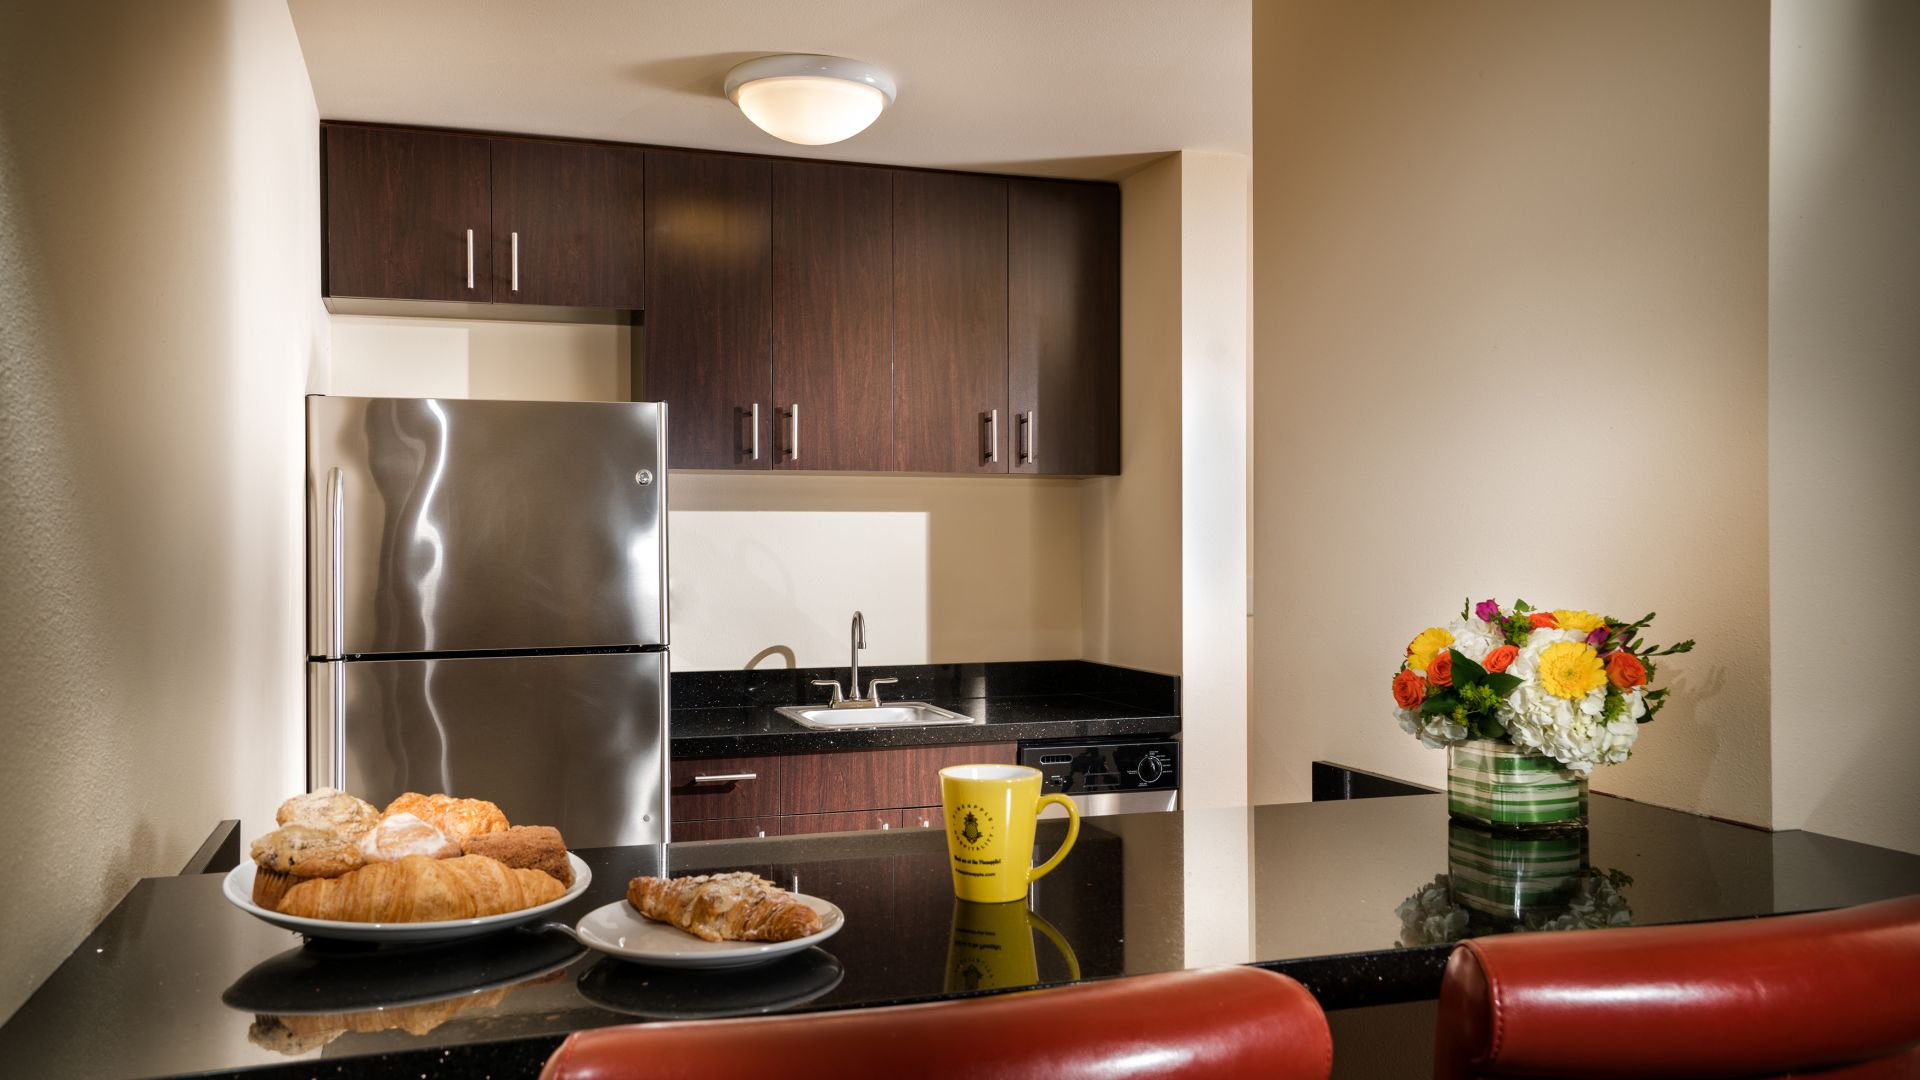 Kitchenette area in the Maestro Suite guestroom